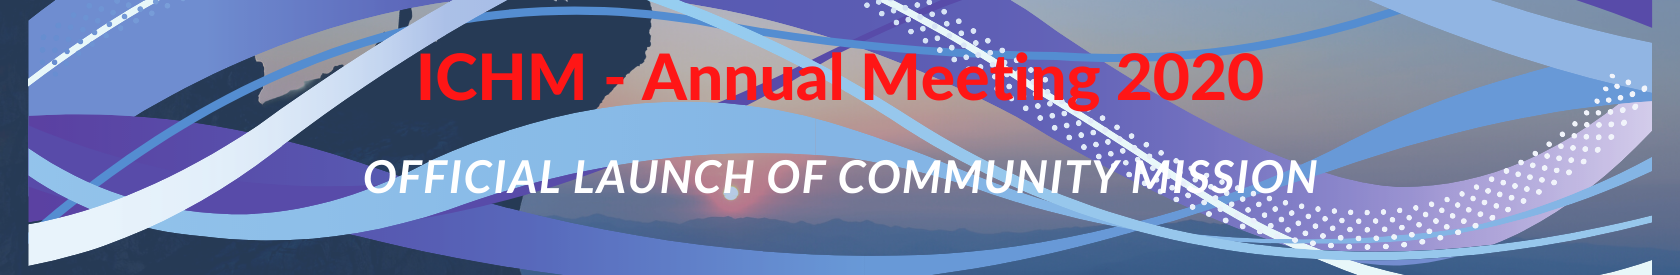 ICHM Annual Meeting and Official Launch of Health Ministry Community